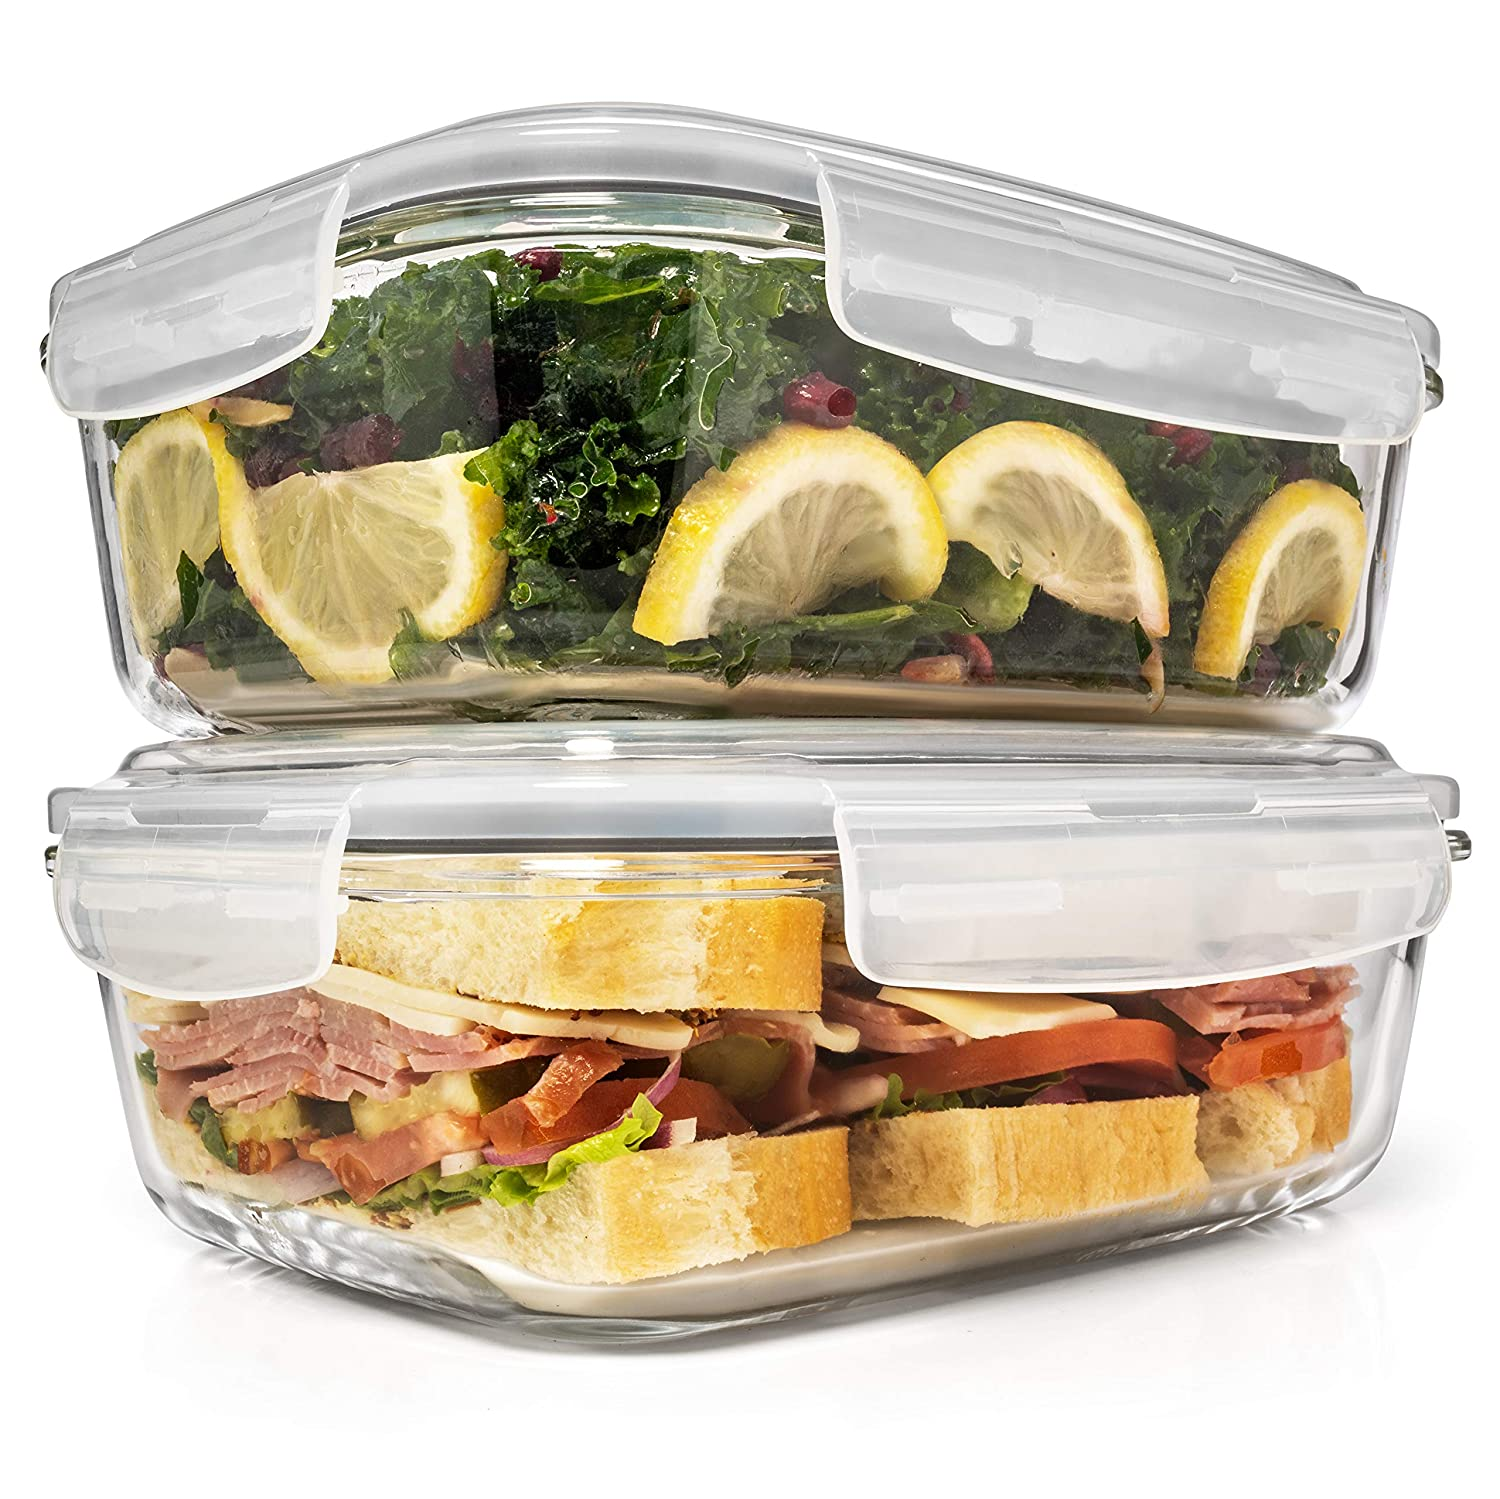 6.5 Cups/ 52 Oz 4 Piece (2 Containers +2 Lids) Glass Food Storage/Baking Container Set w/Locking Lid - For Storing & Serving BPA Free & Leak Proof - Microwave, Dishwasher, Fridge, Freezer n Oven Safe